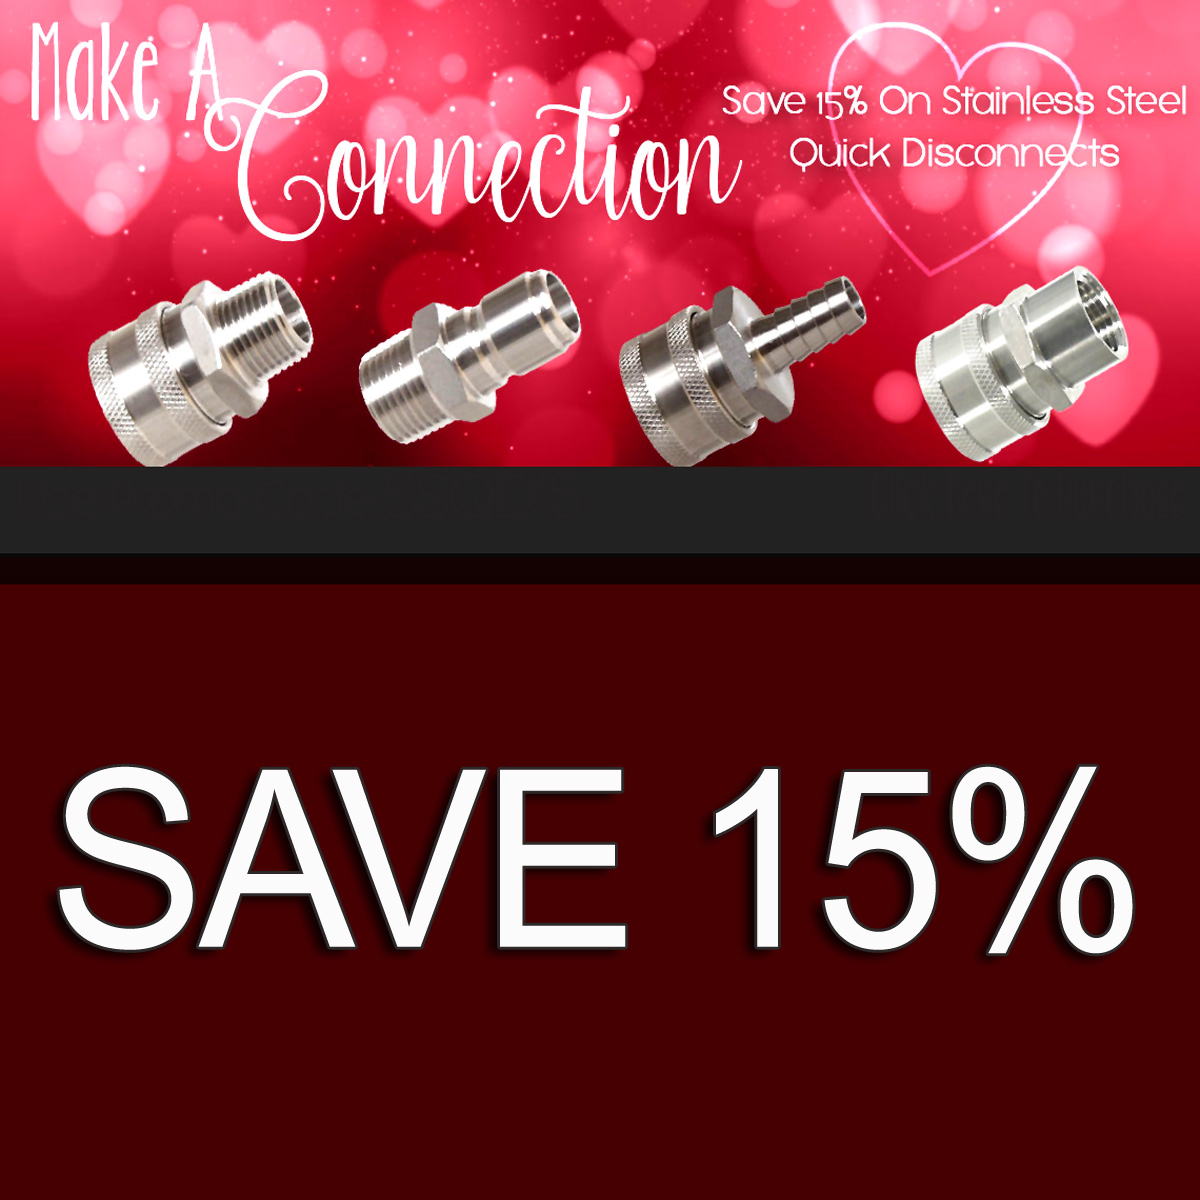 MoreBeer Save 15% On Stainless Steel Quick Disconnects and MoreBeer.com With Promo Code SSQD15 Coupon Code